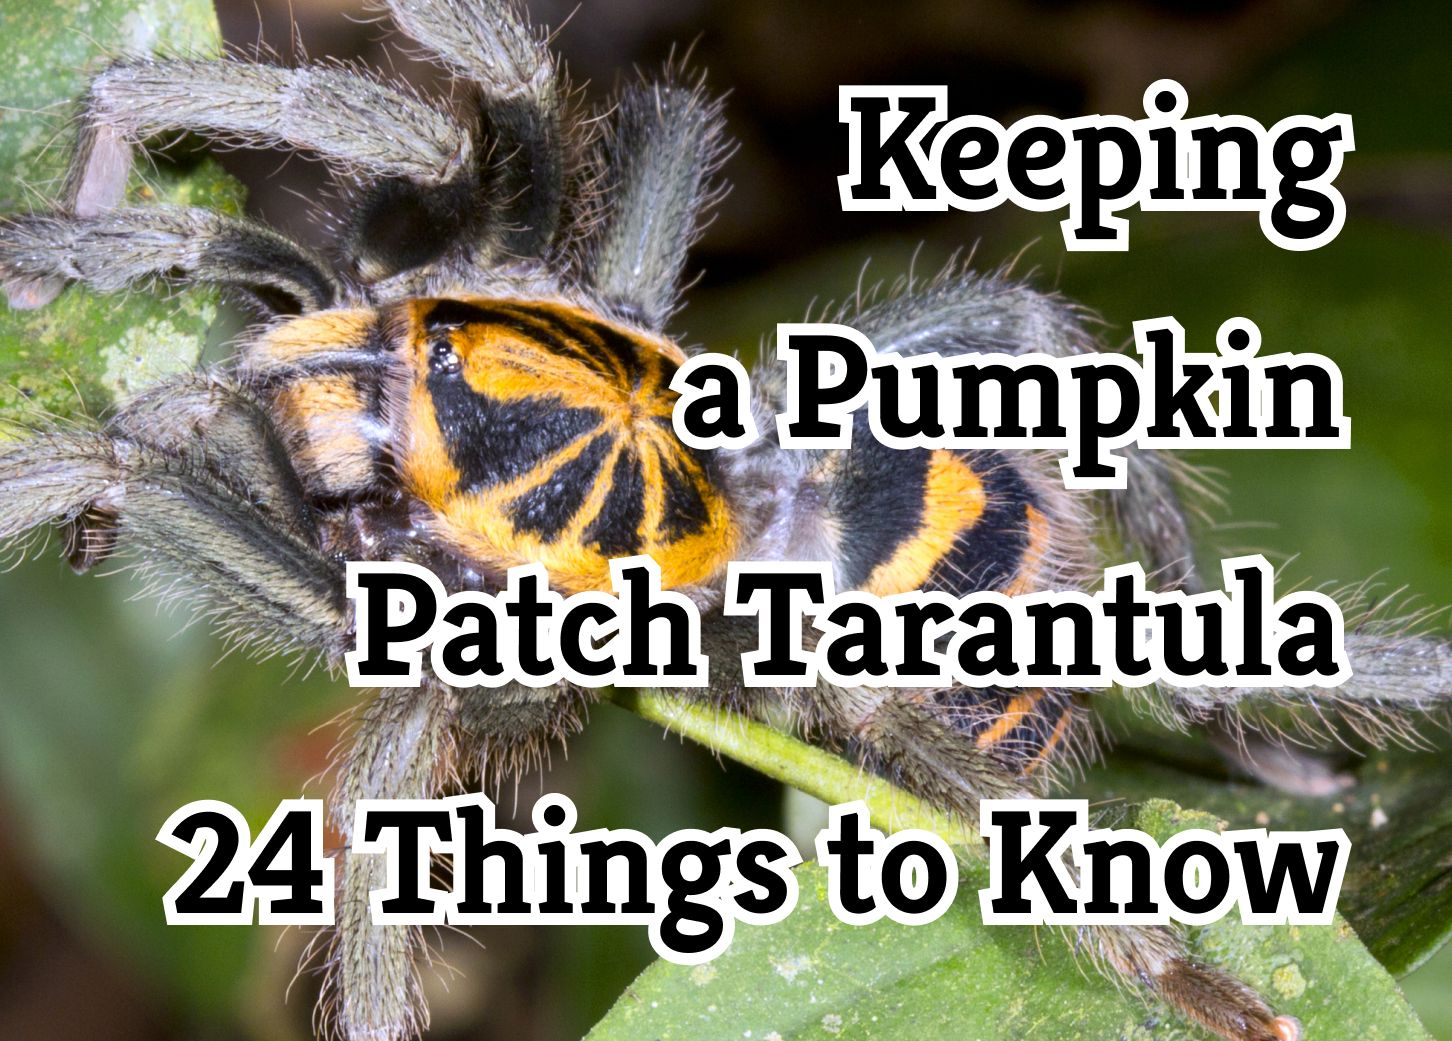 24 Crucial Things to Know About the Pumpkin Patch Tarantula